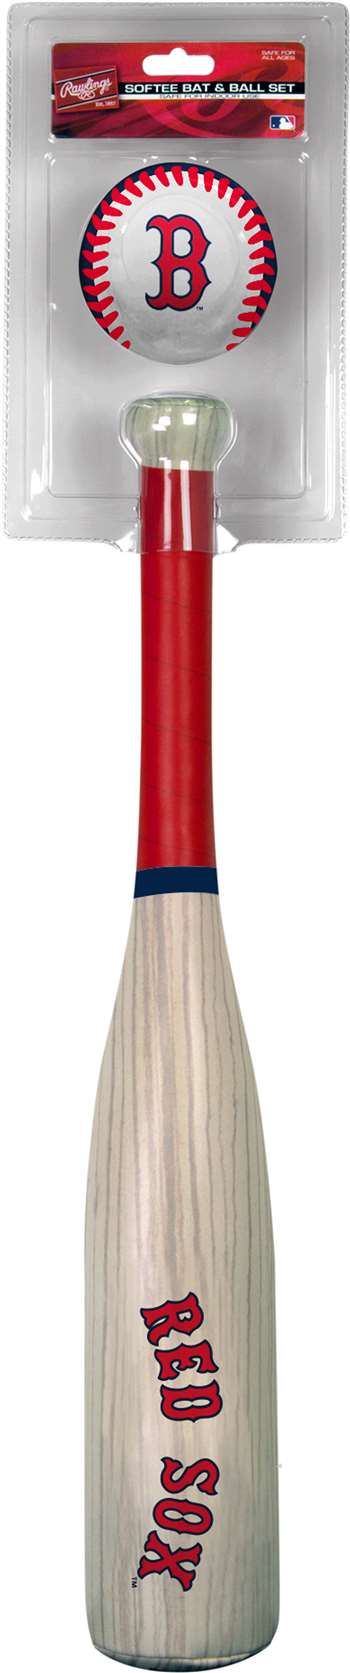 MLB Boston Red Sox Grand Slam Softee Bat and Ball Set (Wood Grain)